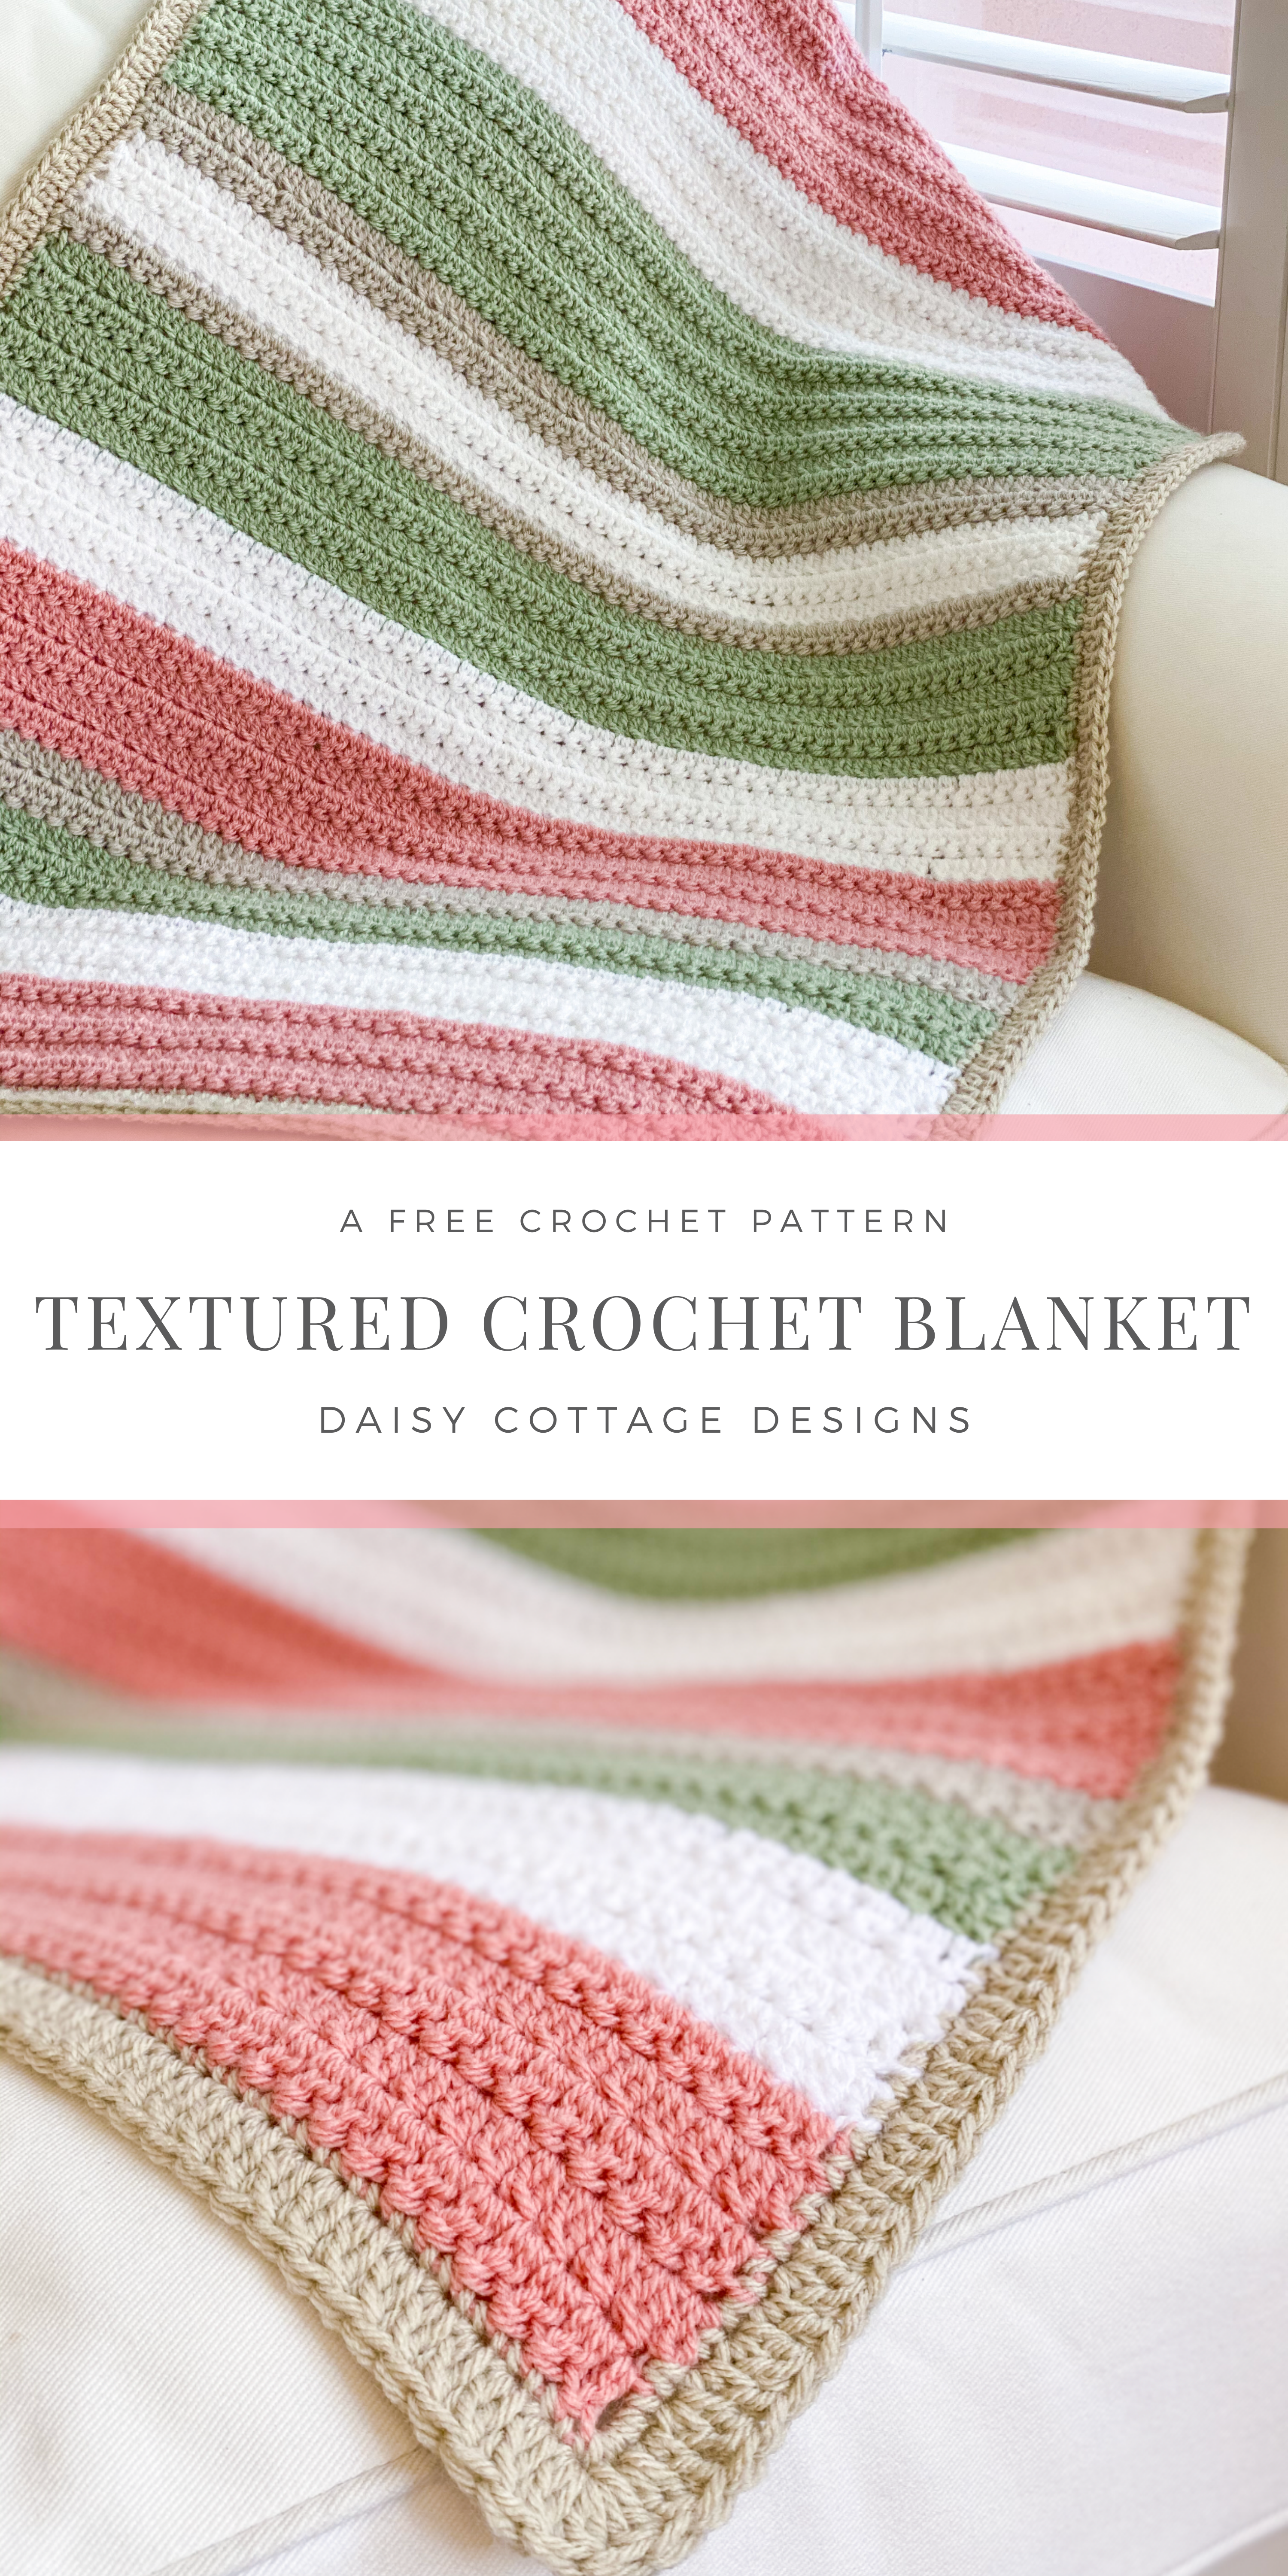 Use this quick and easy crochet pattern to create a beautiful crochet blanket. Follow the crochet blanket tutorial to make a lovely striped blanket with a fantastic texture.